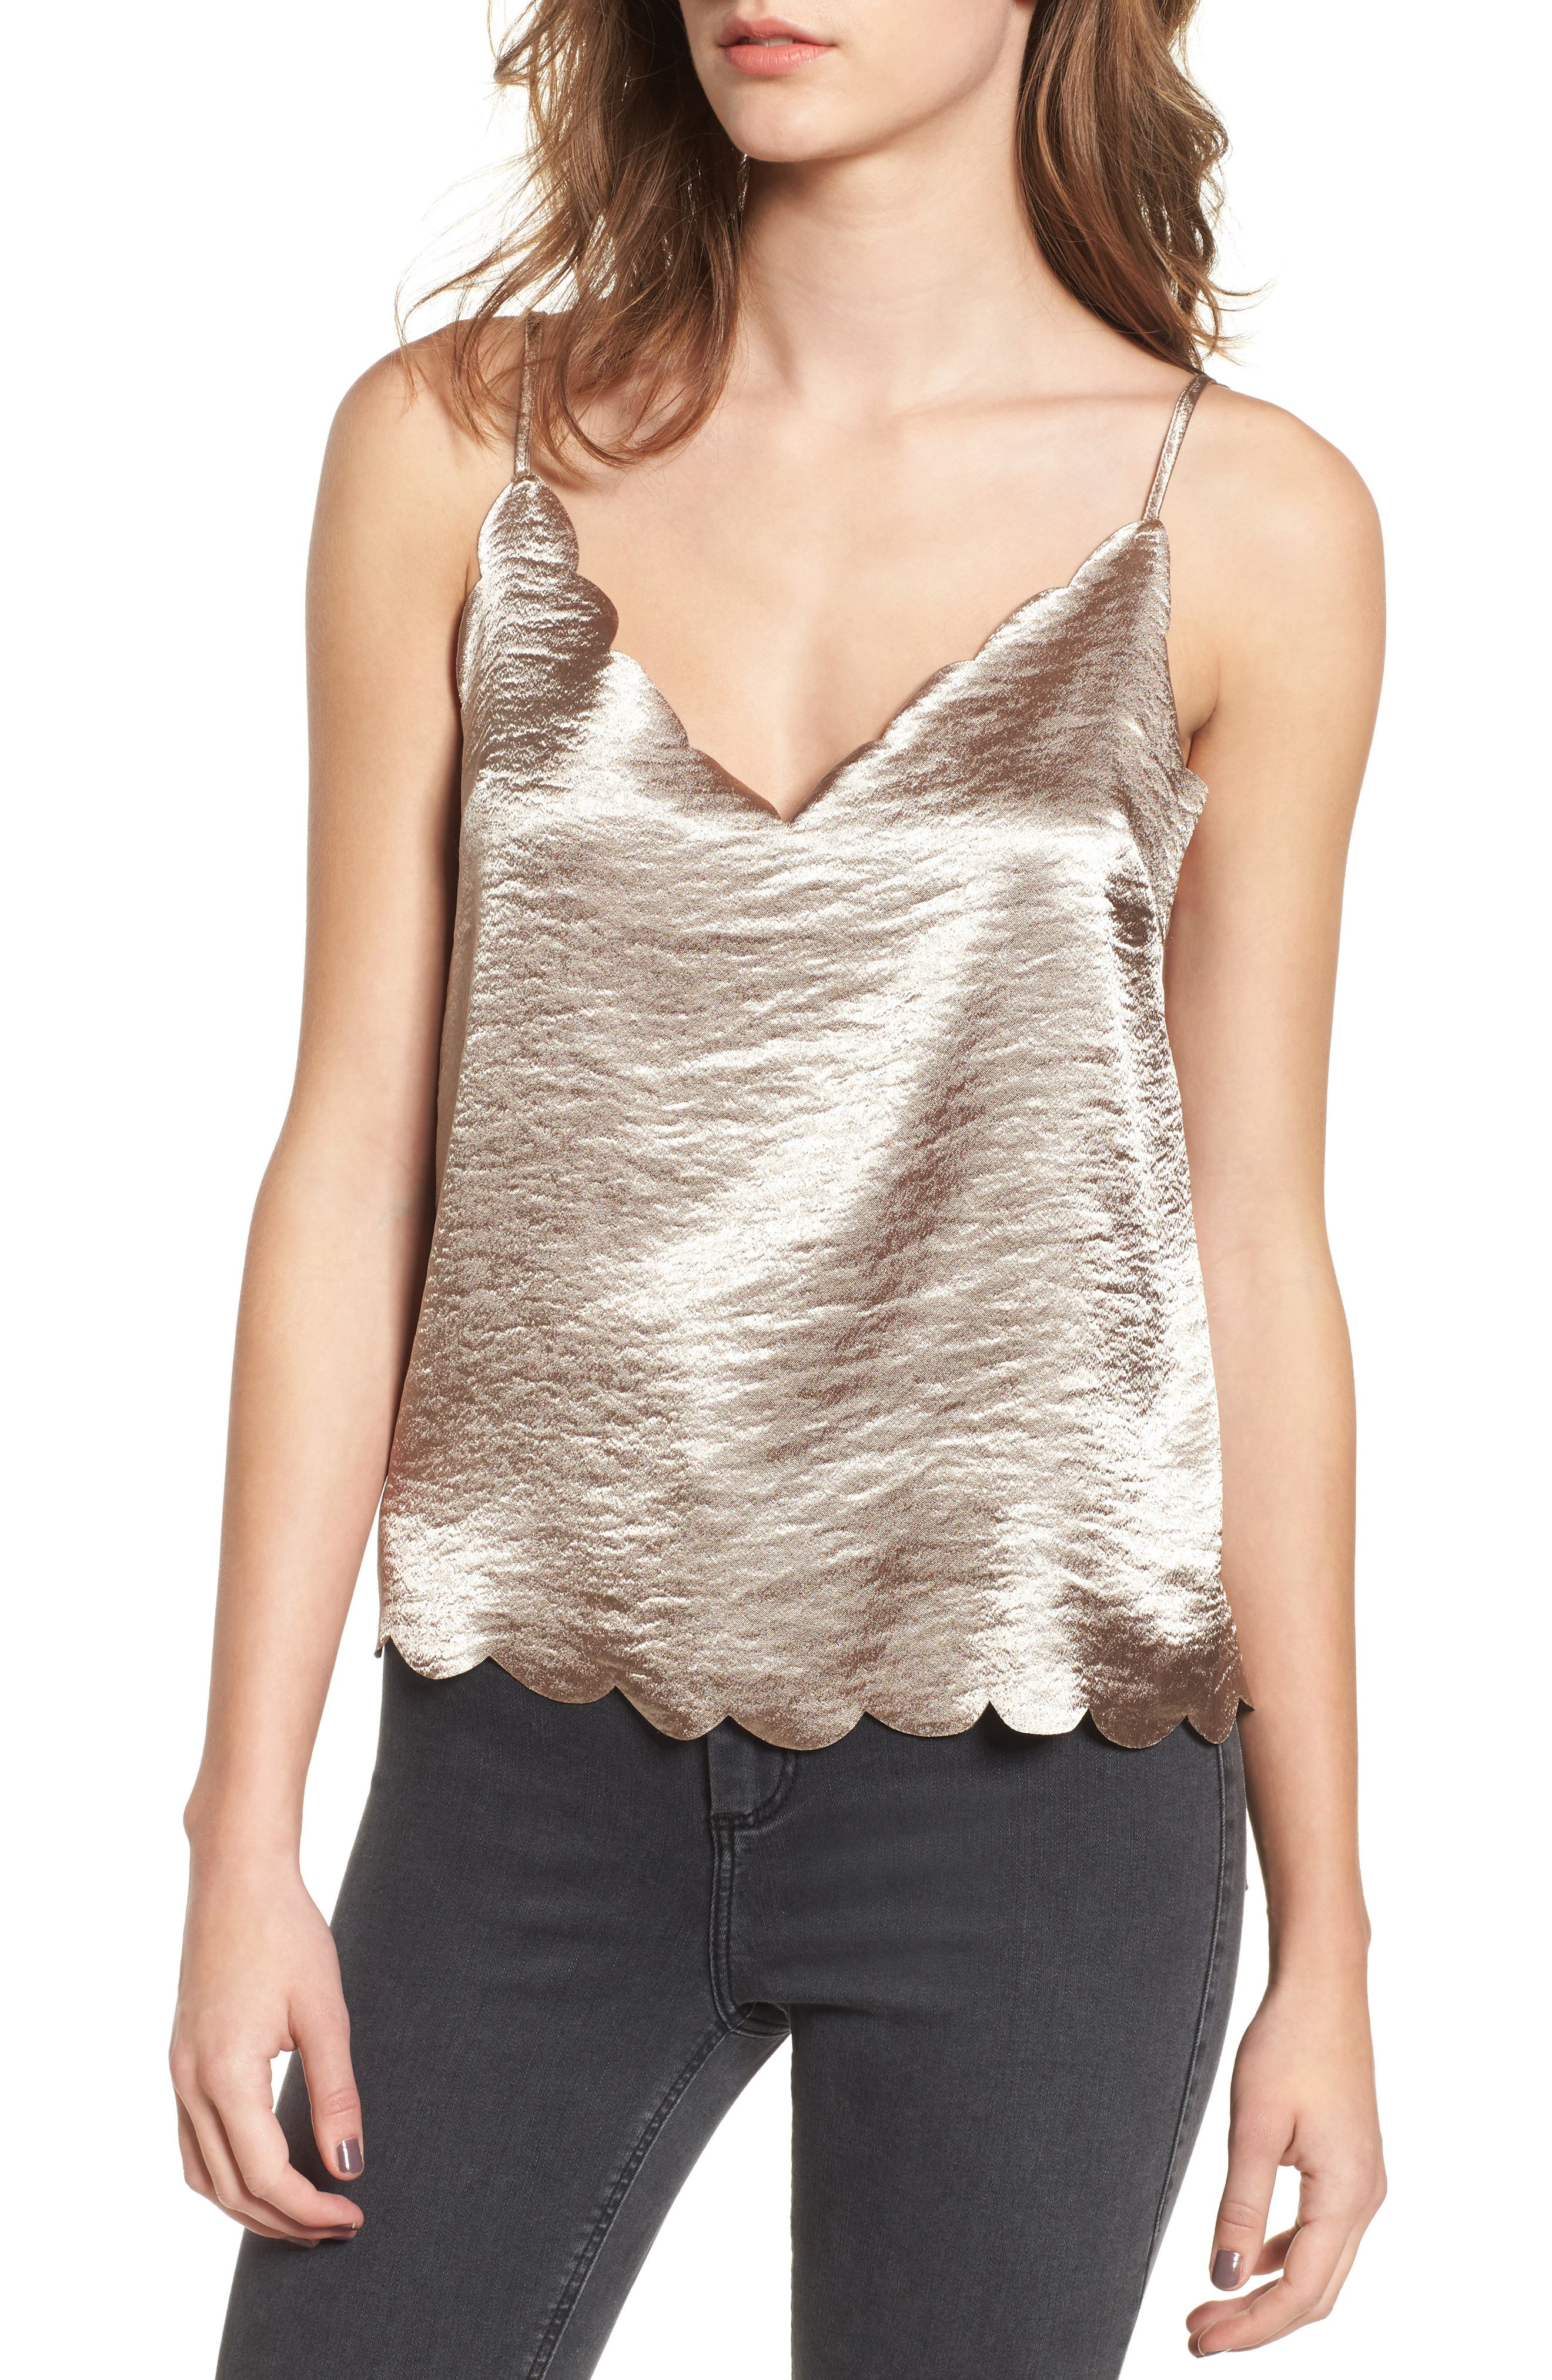 Alternate Image 1 Selected - BP. Scallop Edge Camisole